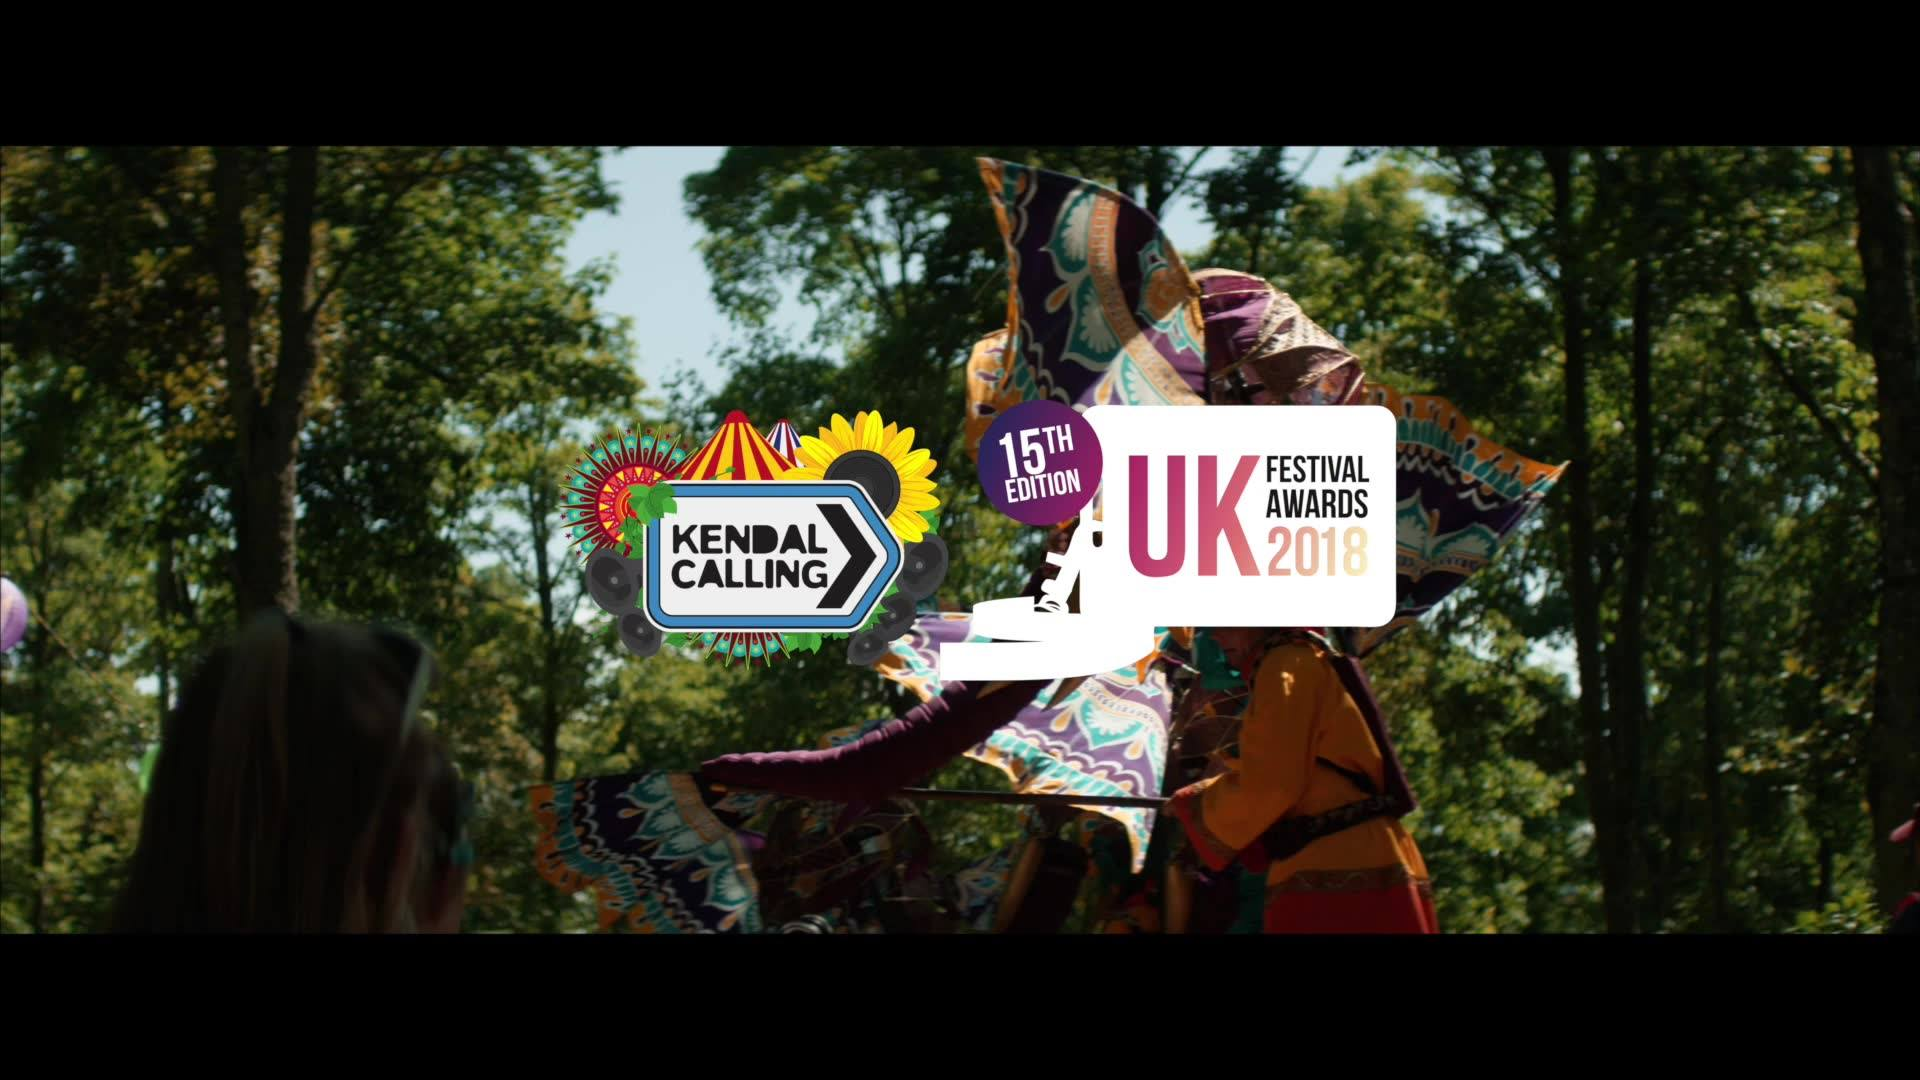 Vote for Kendal Calling in the Festival Awards!